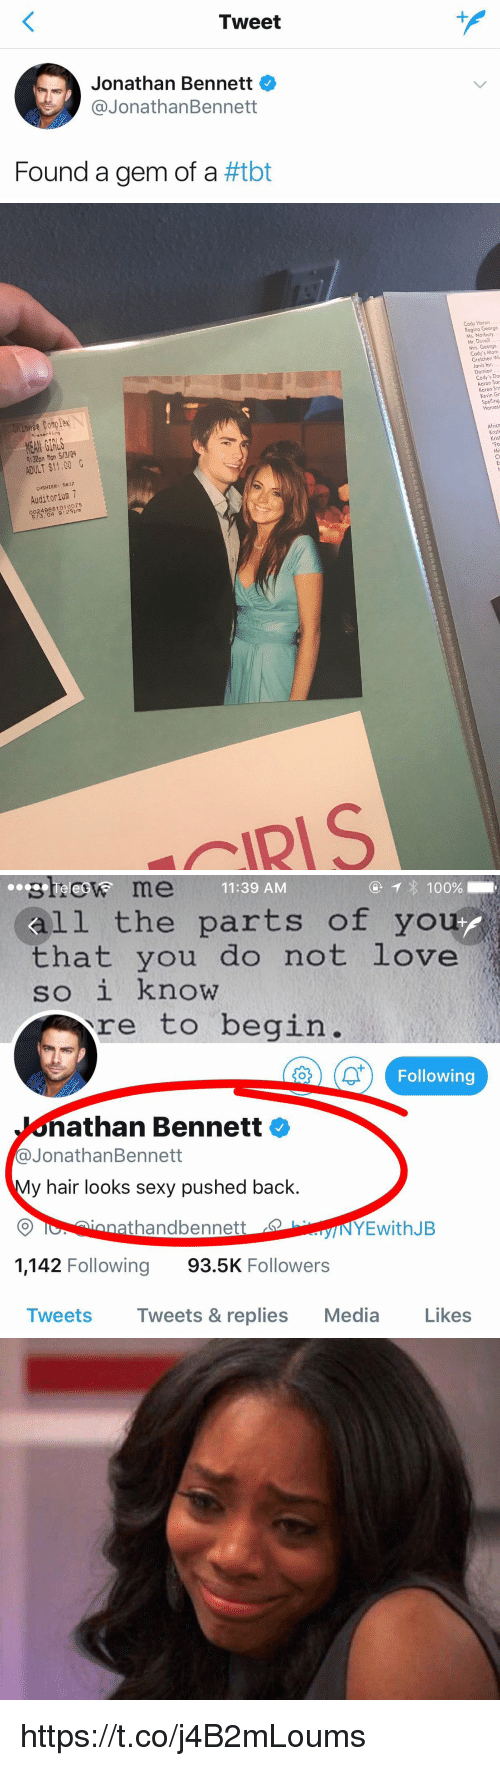 Girls, Love, and Sexy: Tweet  Jonathan Bennett  @JonathanBennett  Found a gem of a #tbt   Cody Heron  Regino George  ex  MEAN GIRLS  9:30pm Man 5/3/34  ADULT $11.00  CASHIER: 5637  Auditorium 7  249881010075  /3, 04 9:25pm  IRIS   steew me  11:39 AM  all the parts of you  that you do not love  SO 1 Know  re to begin.  1  Following  athan Bennett  @@JonathanBennett  y hair looks sexy pushed back.  nnathandbennett  1,142 Following 93.5K Followers  INYEwithJB  Tweets Tweets & replies Media Likes https://t.co/j4B2mLoums